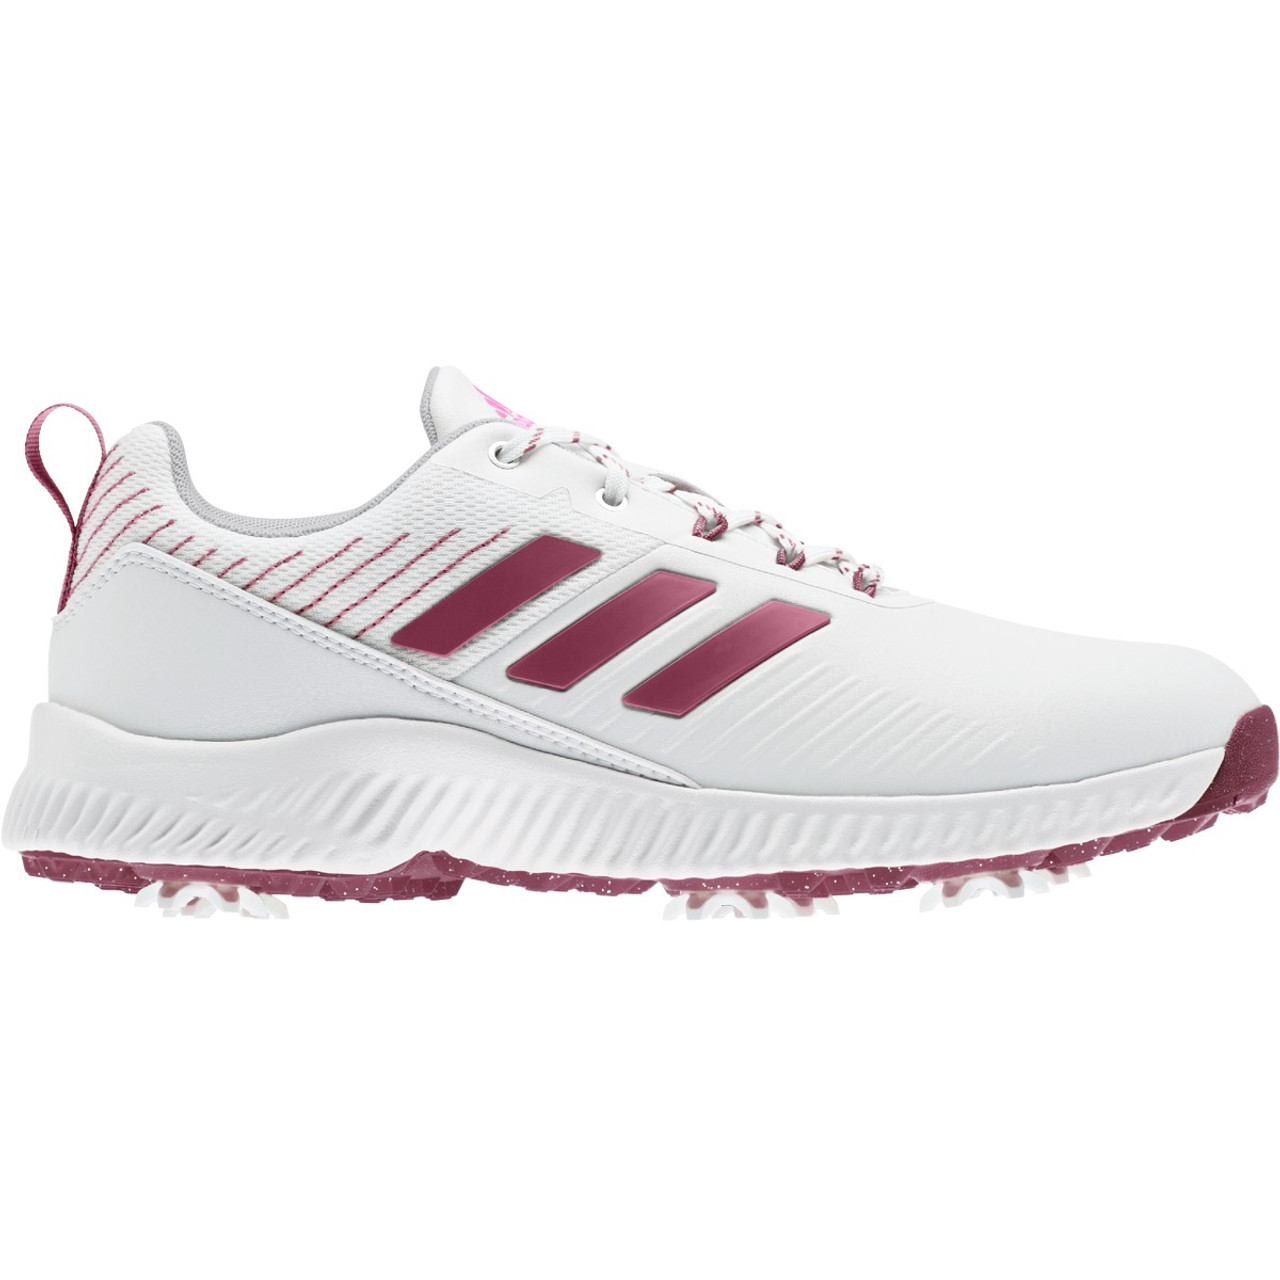 Adidas Womens Response Bounce 2.0 Golf Shoes - White / Wild Pink / Screaming Pink